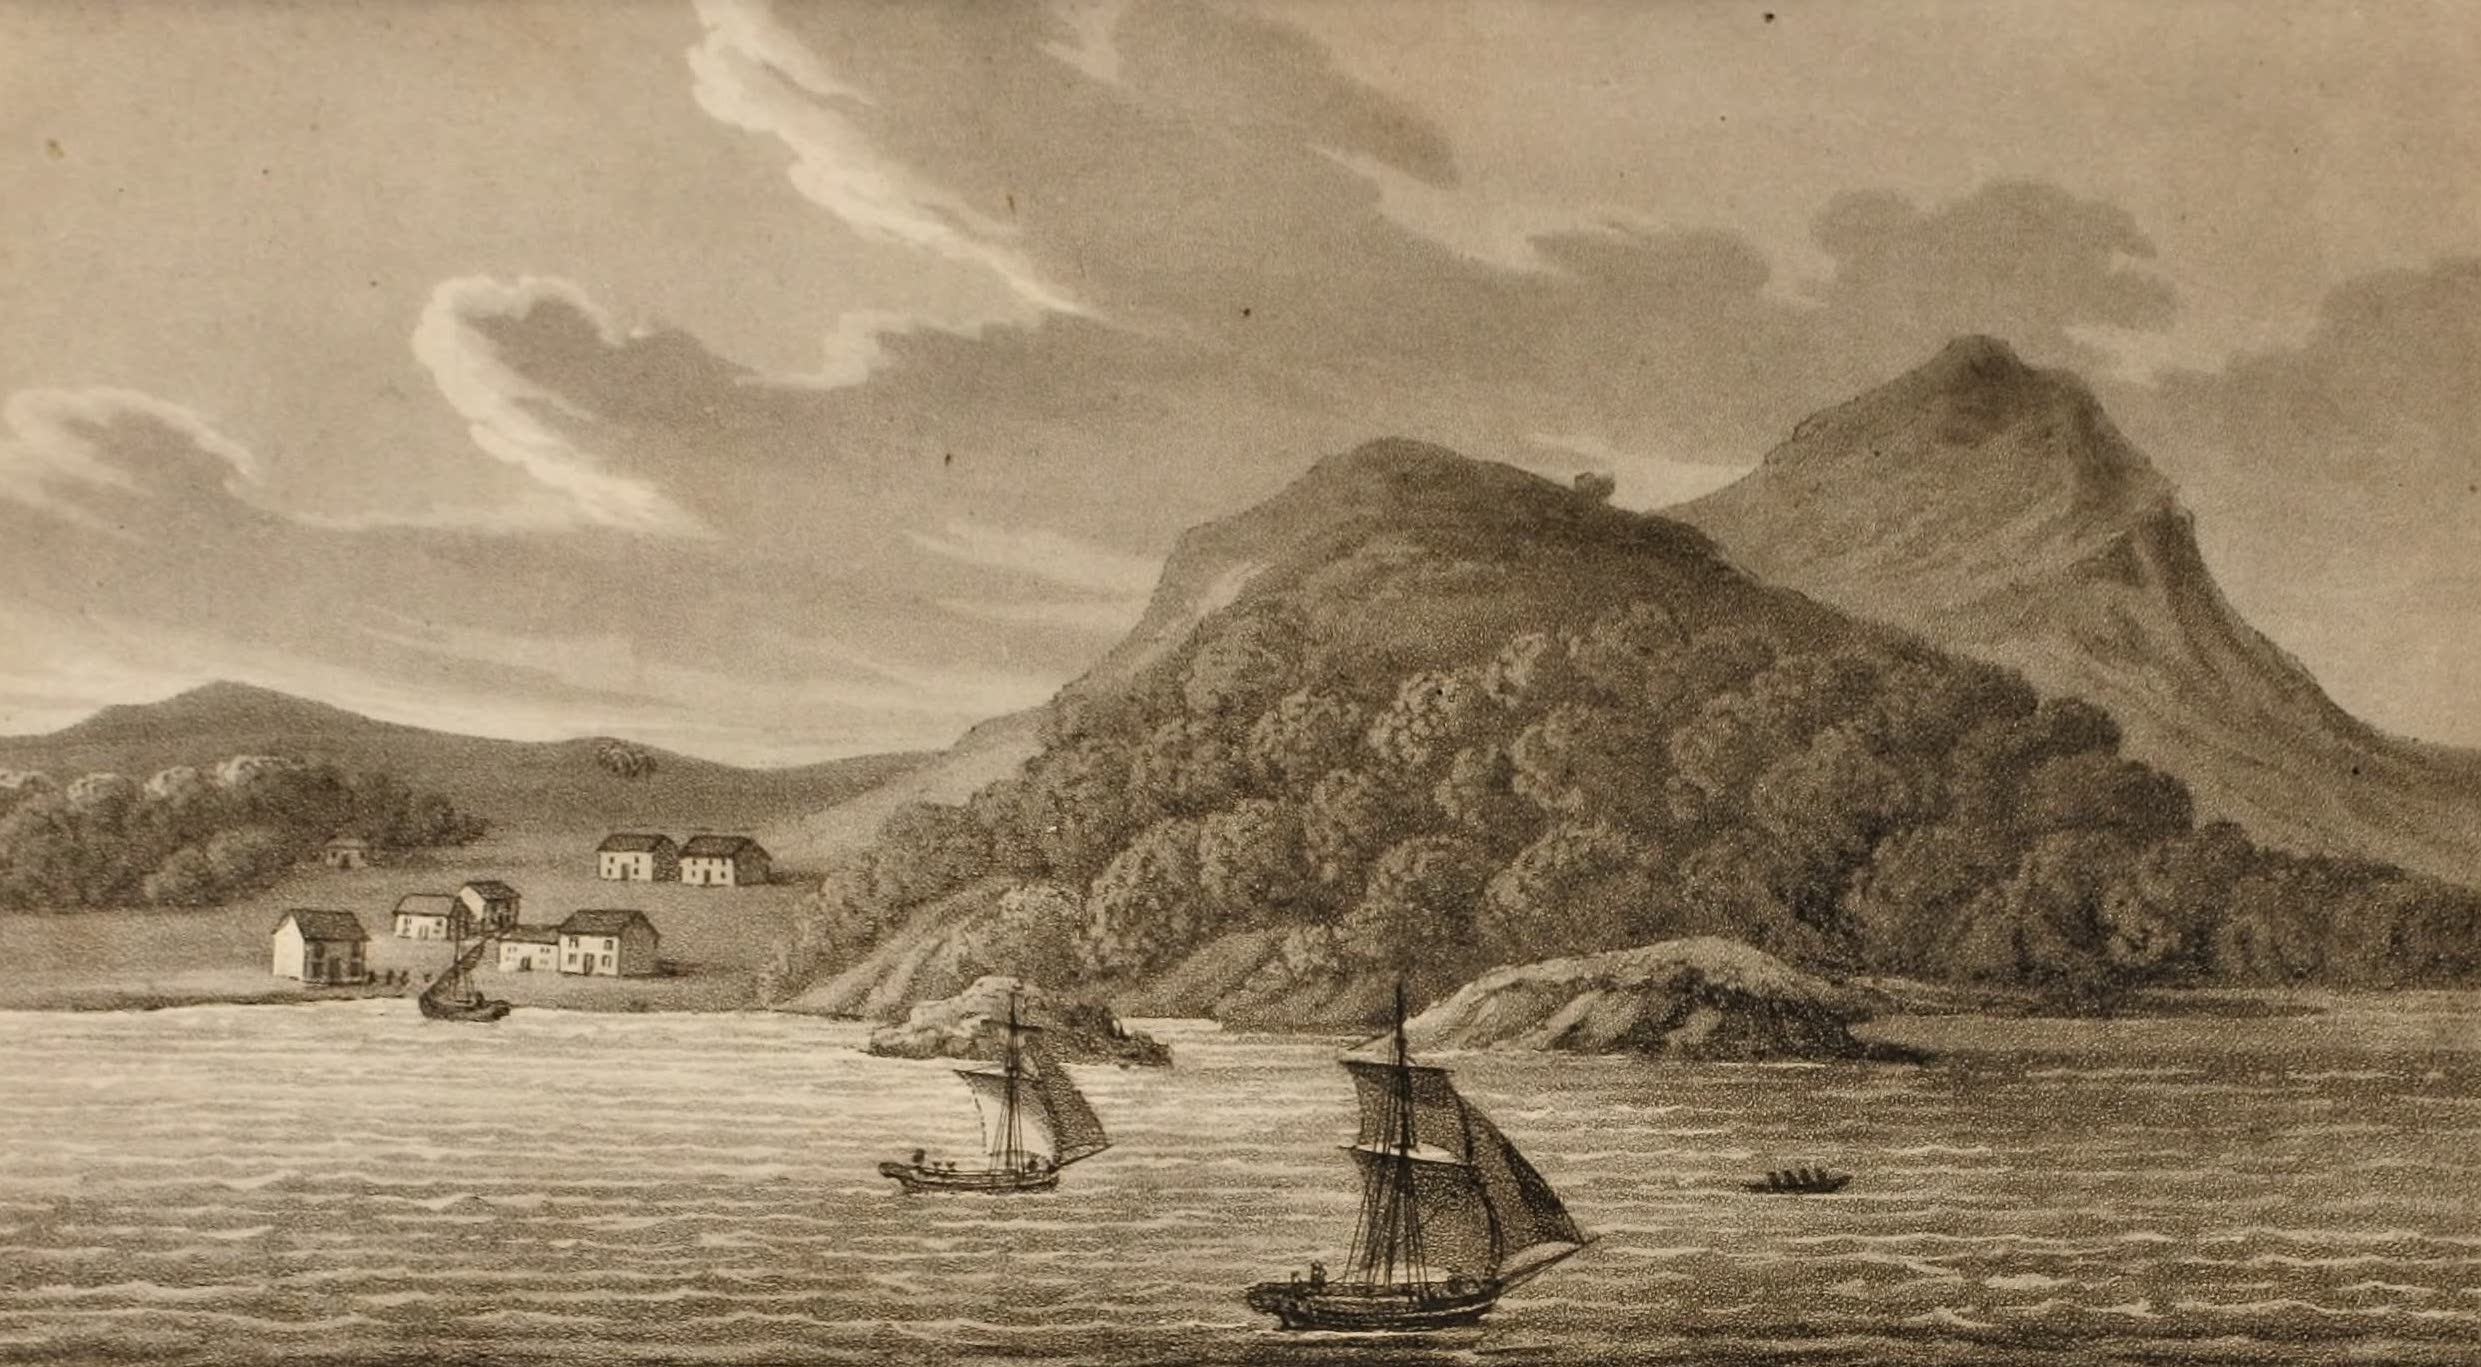 Journal of an Expedition 1400 miles up the Orinoco - Caycara (1822)